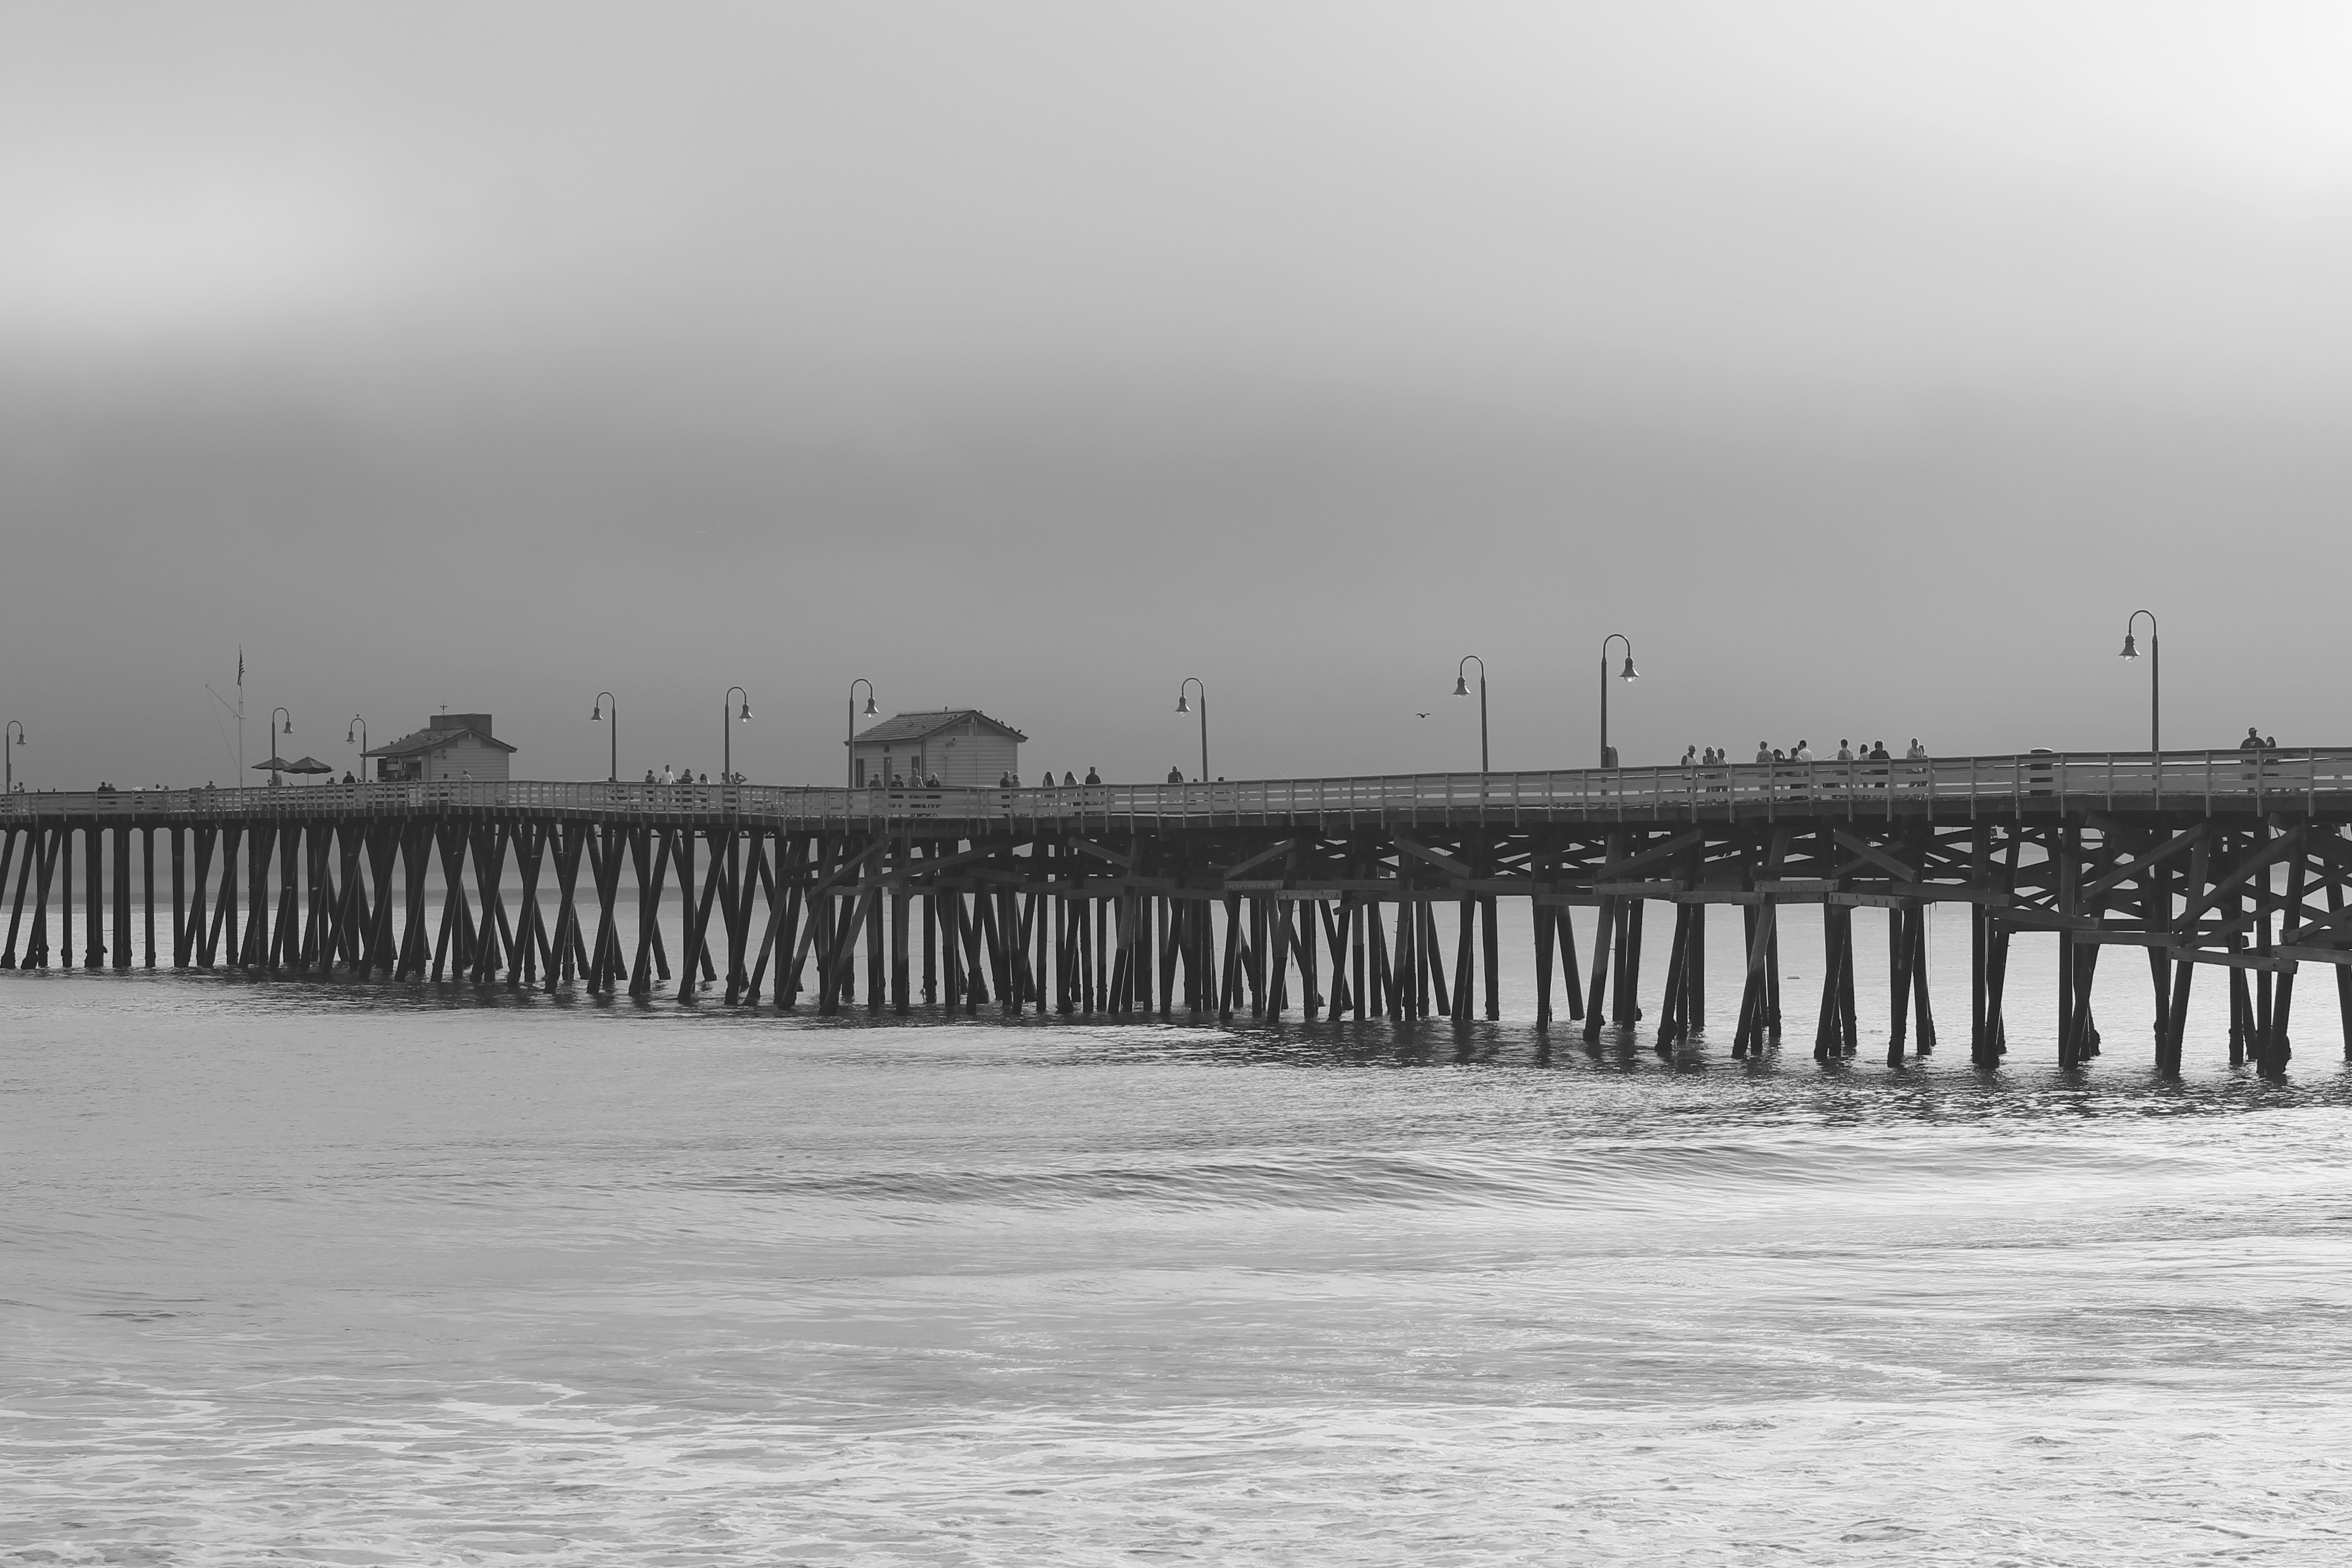 bridge over body of water on grayscale phot